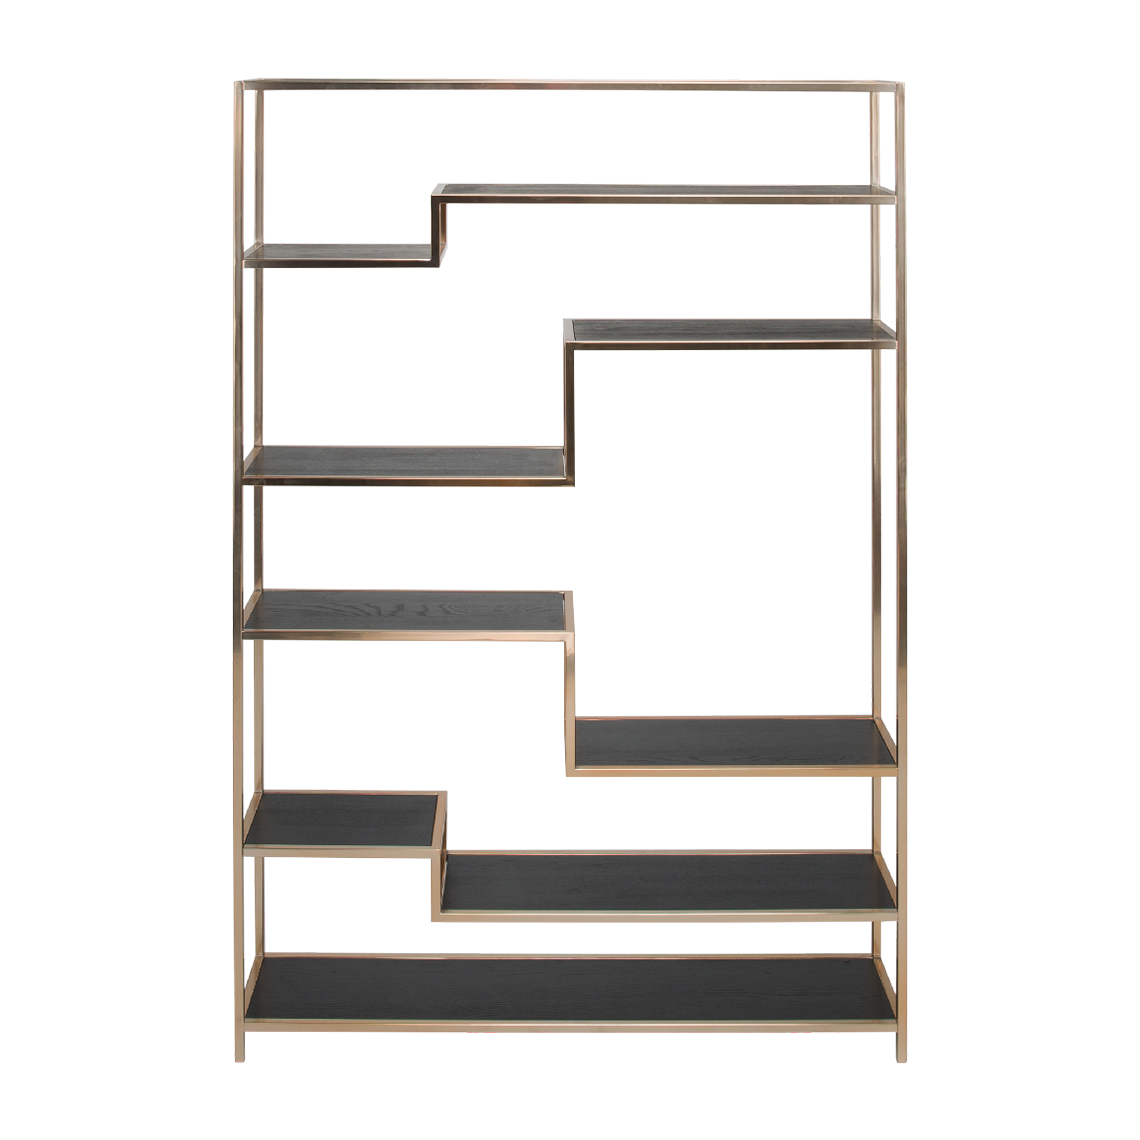 39137 Popular Category - Deep etches_Bookcases & Shelves.png